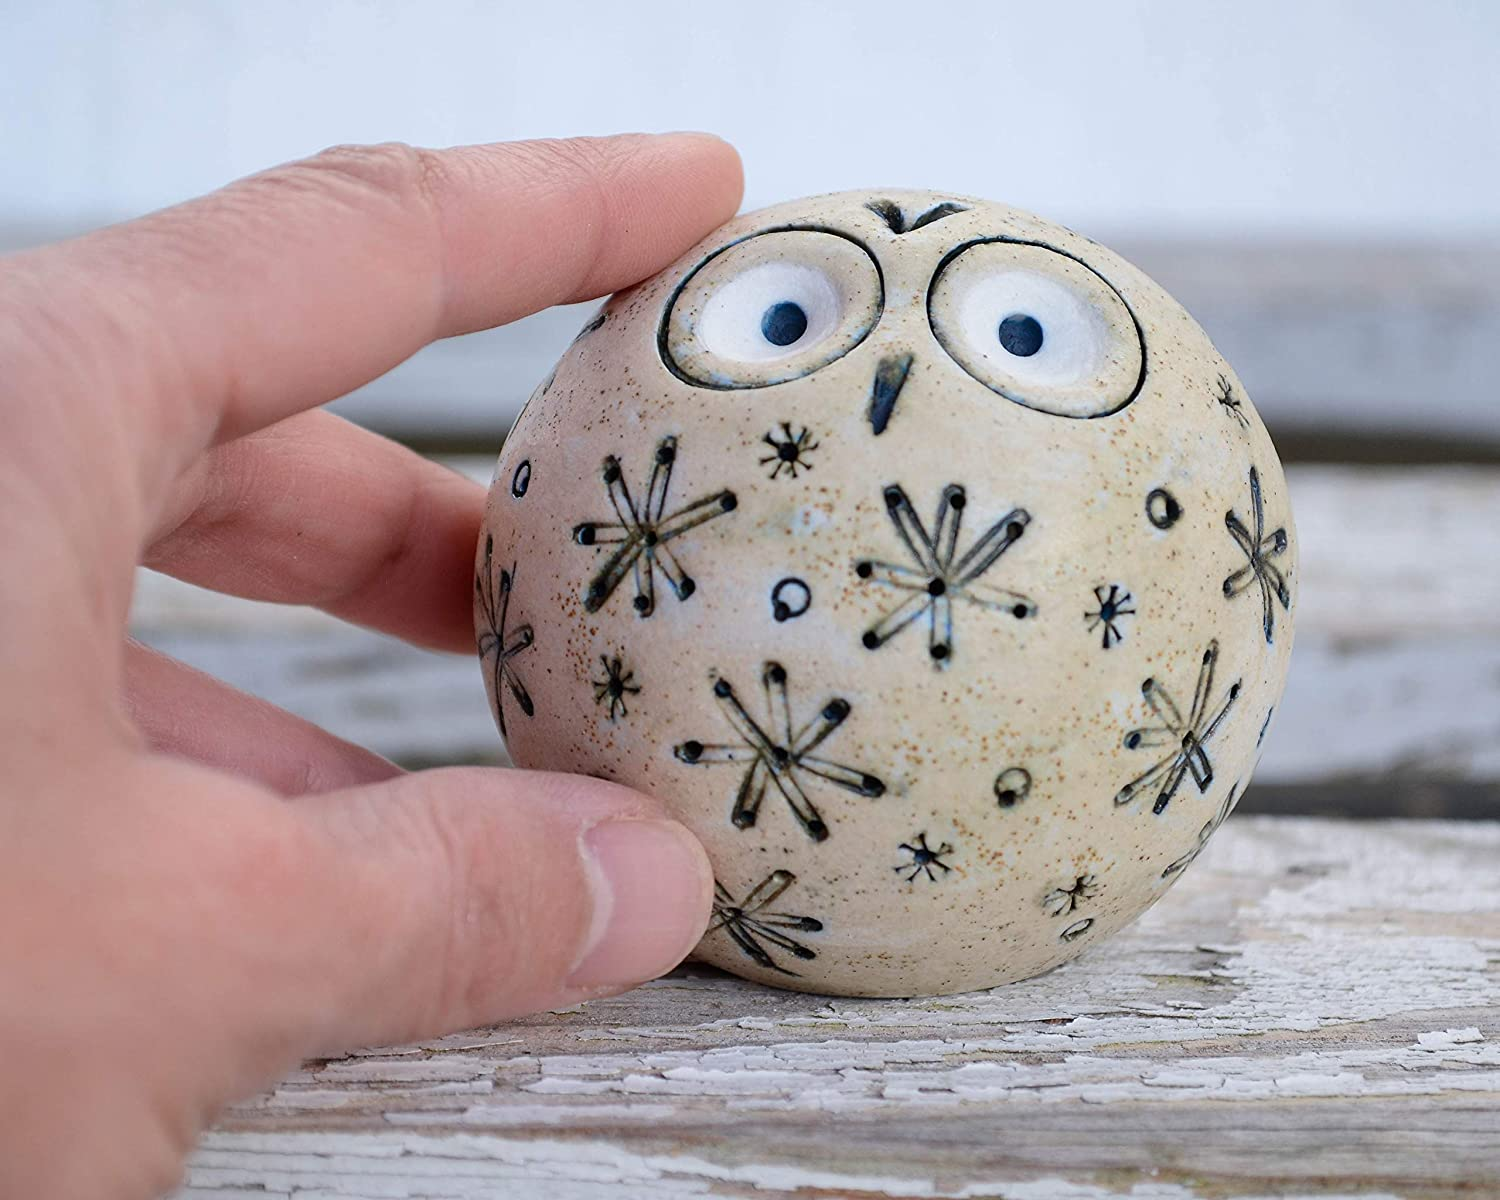 Christmas Stars Ornaments Rustic Baubles Owl, Xmas Table Top Decoration Rustic Funny Gift, Garden Art Cute Gift Mum, Modern Contemporary Owl